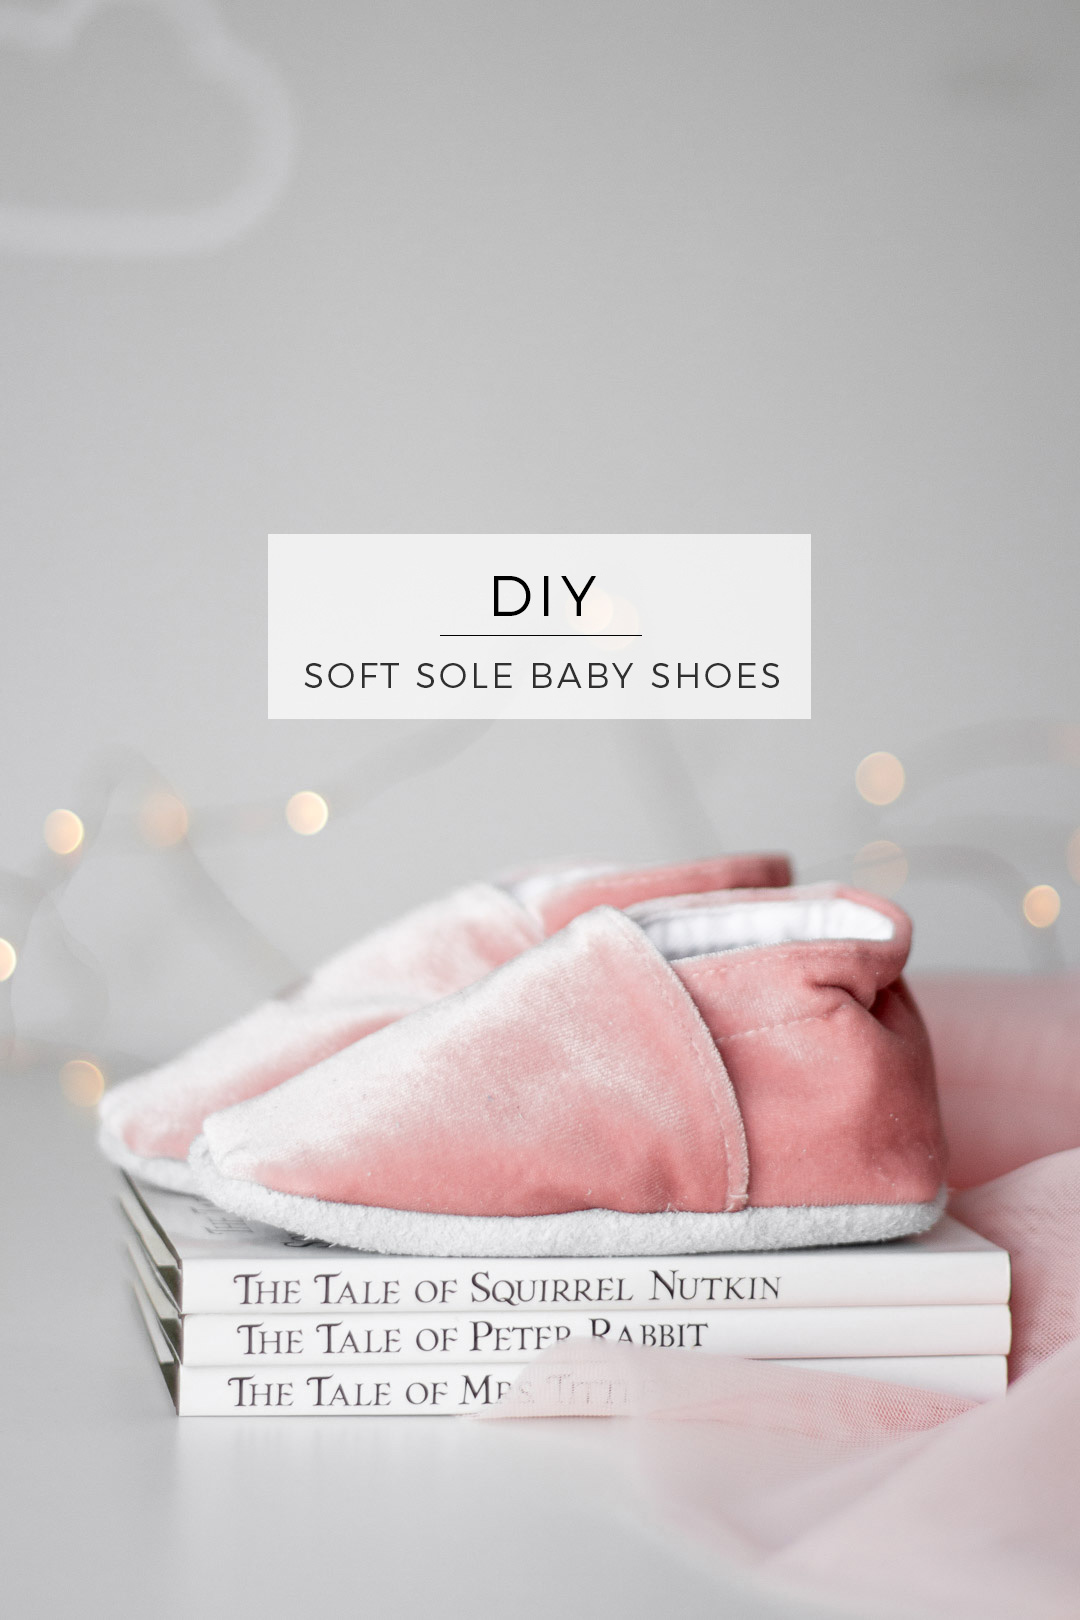 Soft Sole Baby Shoes DIY // Tutorial for handmade toddler shoes // Soft Sole toddler Shoes with a Leather soles and your own choice of fabric